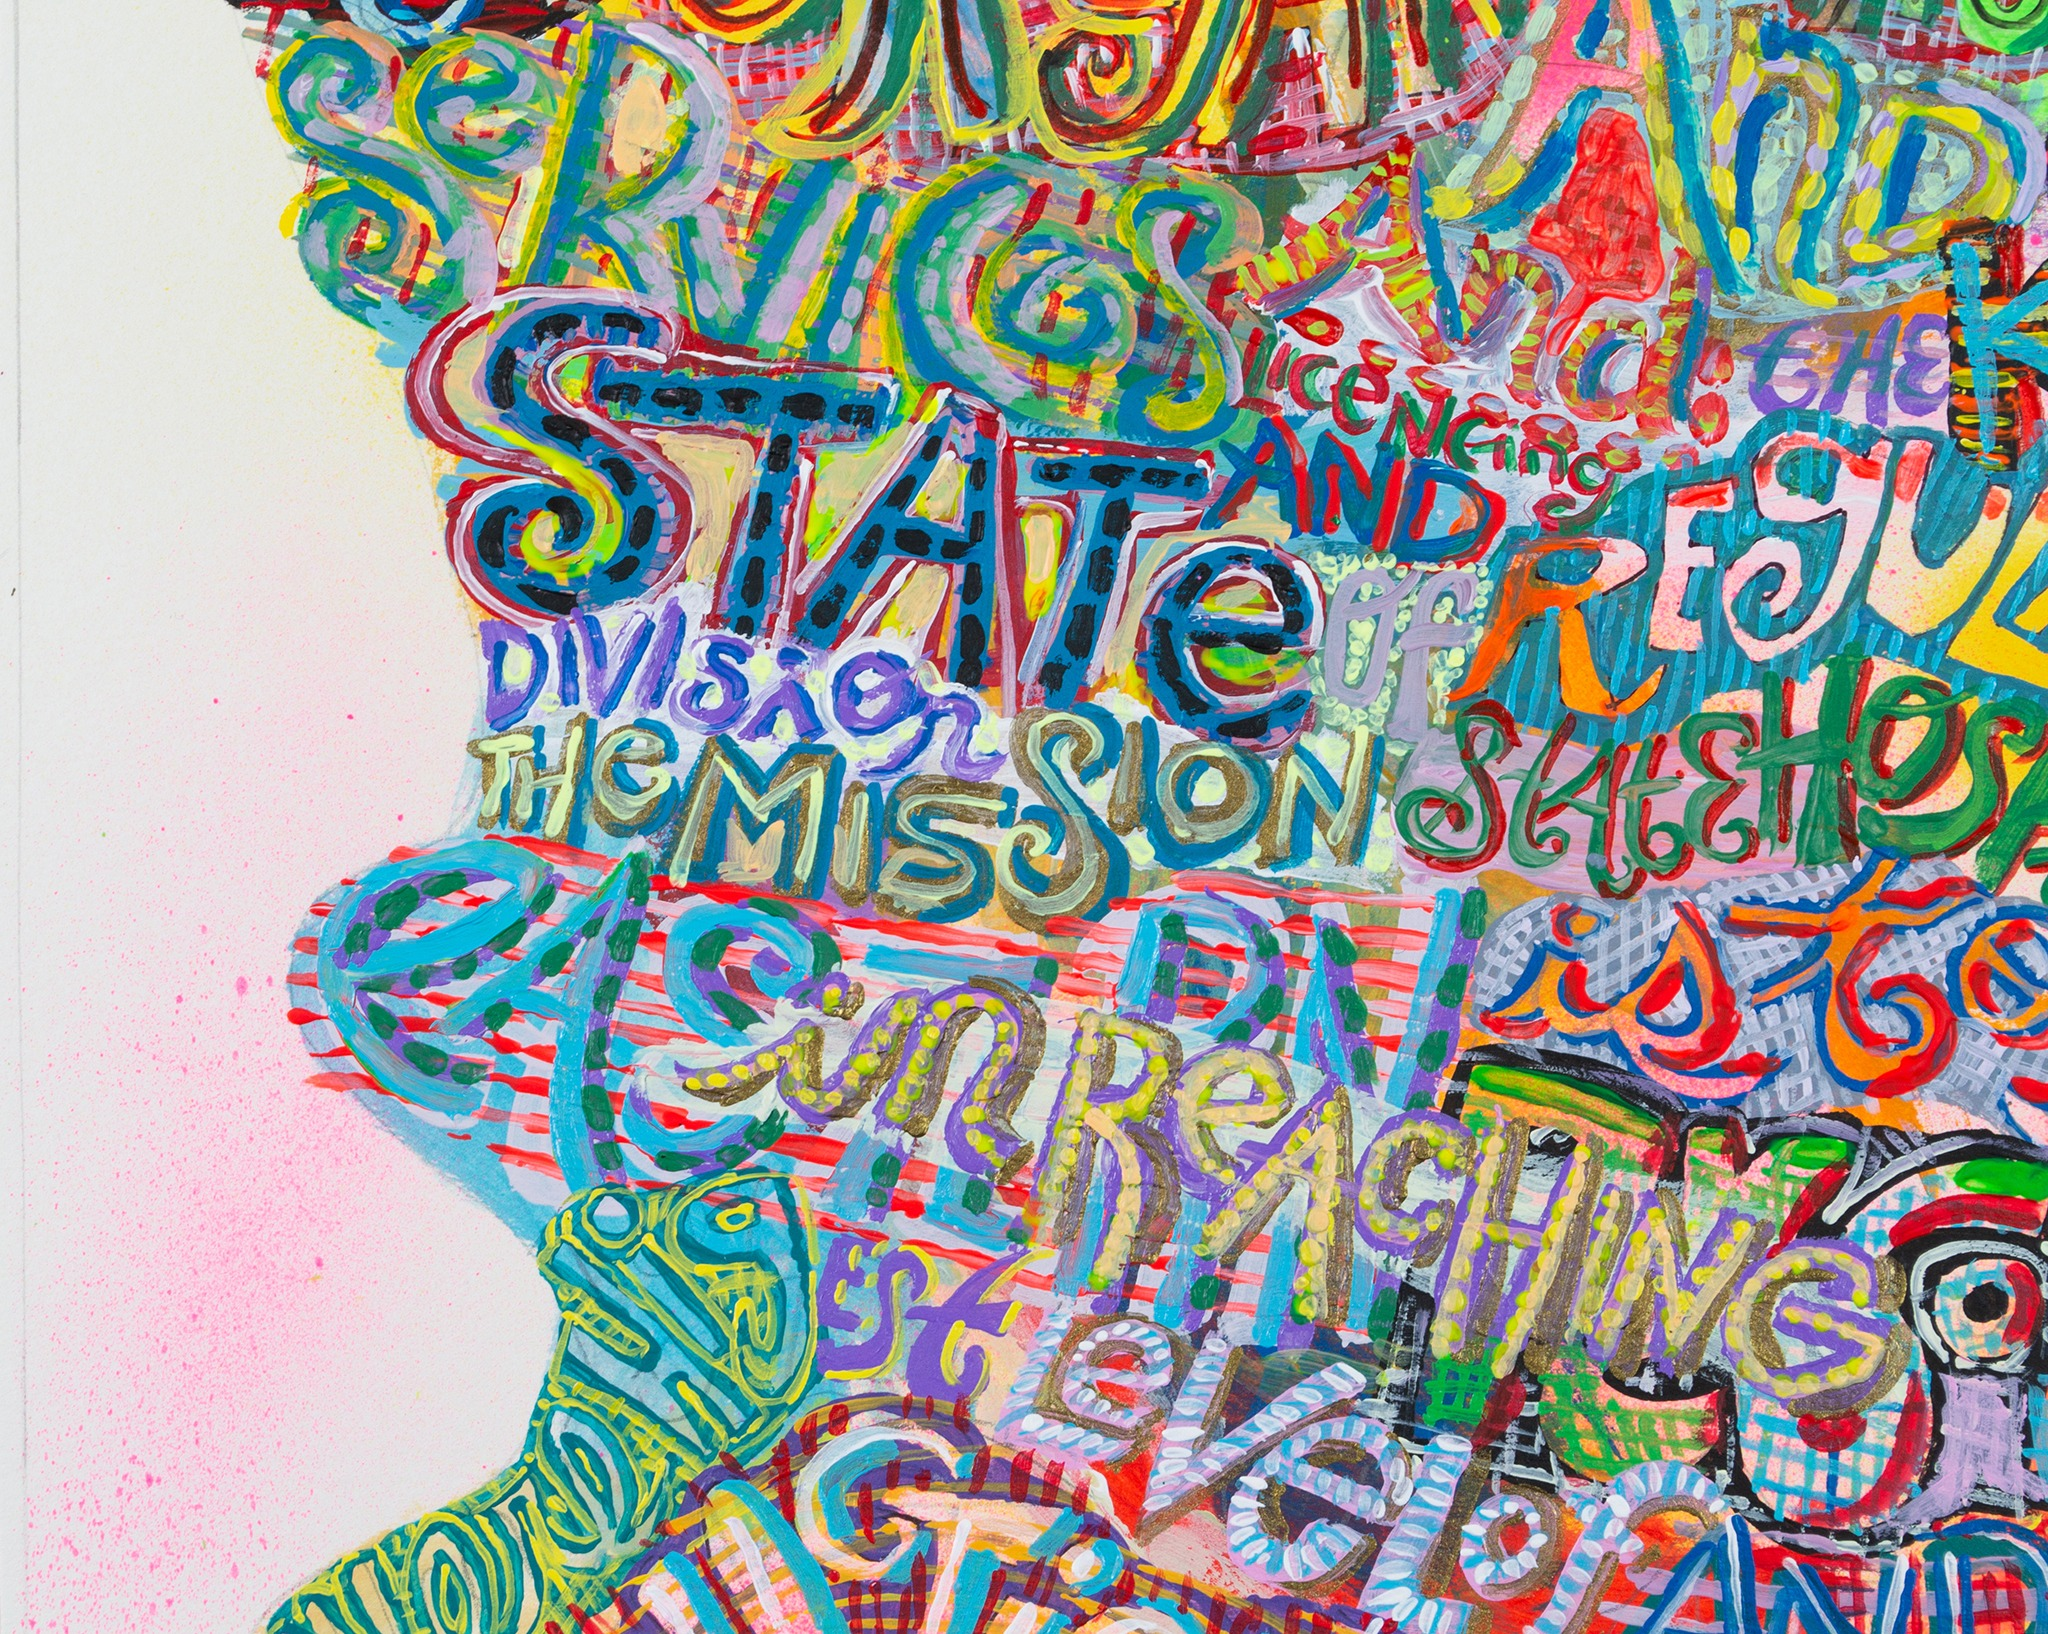 A detail of a painting by Bruce Burris titled State Regulation, dated 2020.